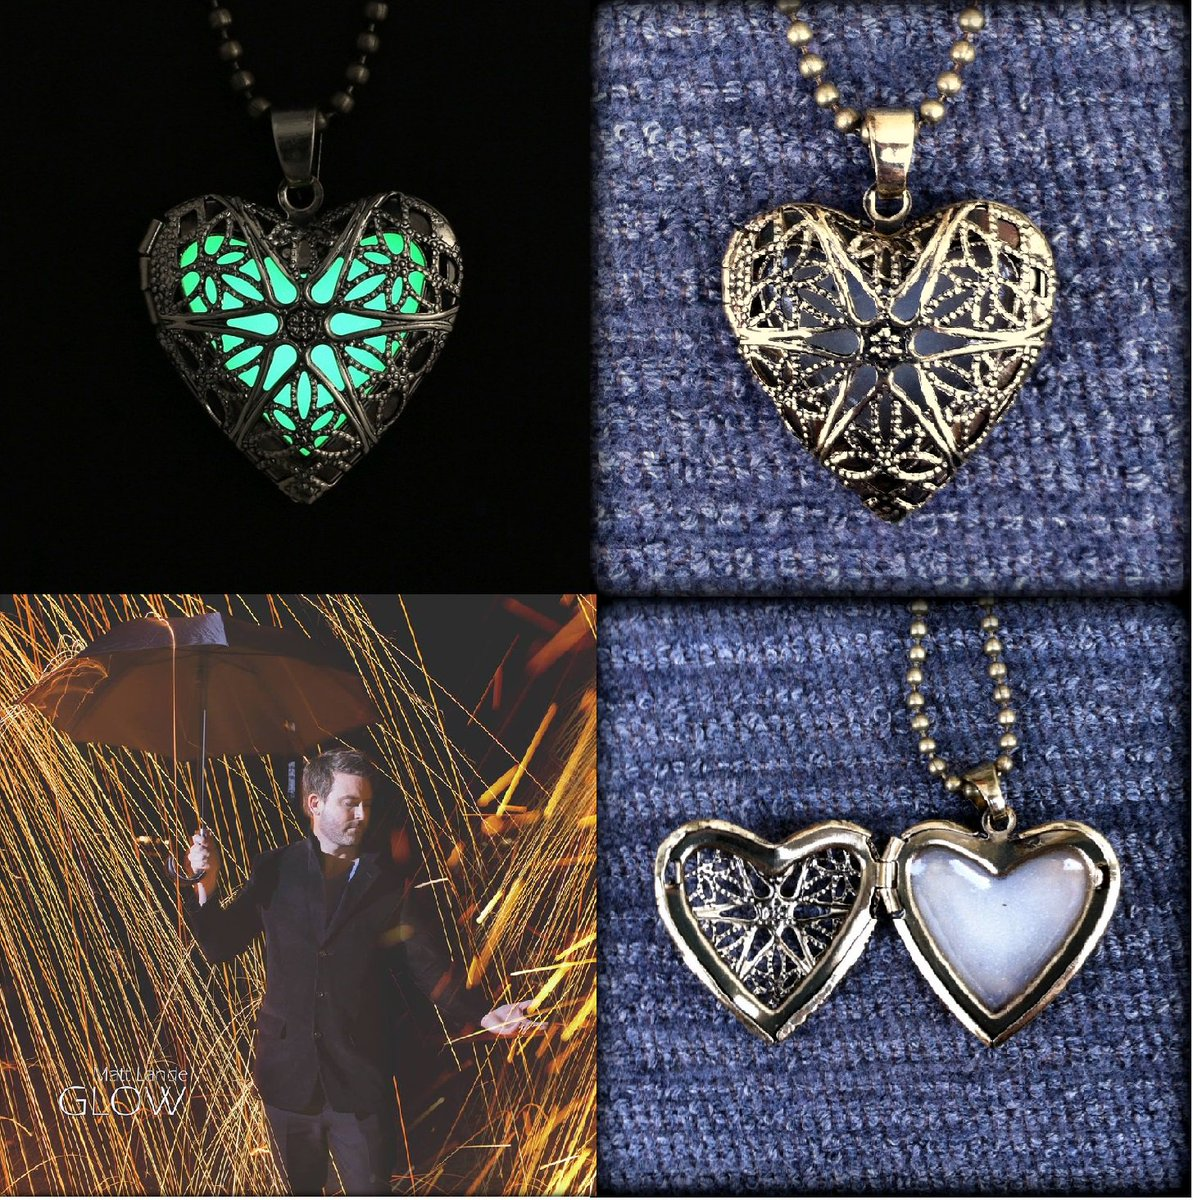 Giveaway Time! Win the Retro Heart Pendant & GLOW Album! 2 Rules for entry: Follow @mattlande & RT this post! :) https://t.co/R3mn6khbrD